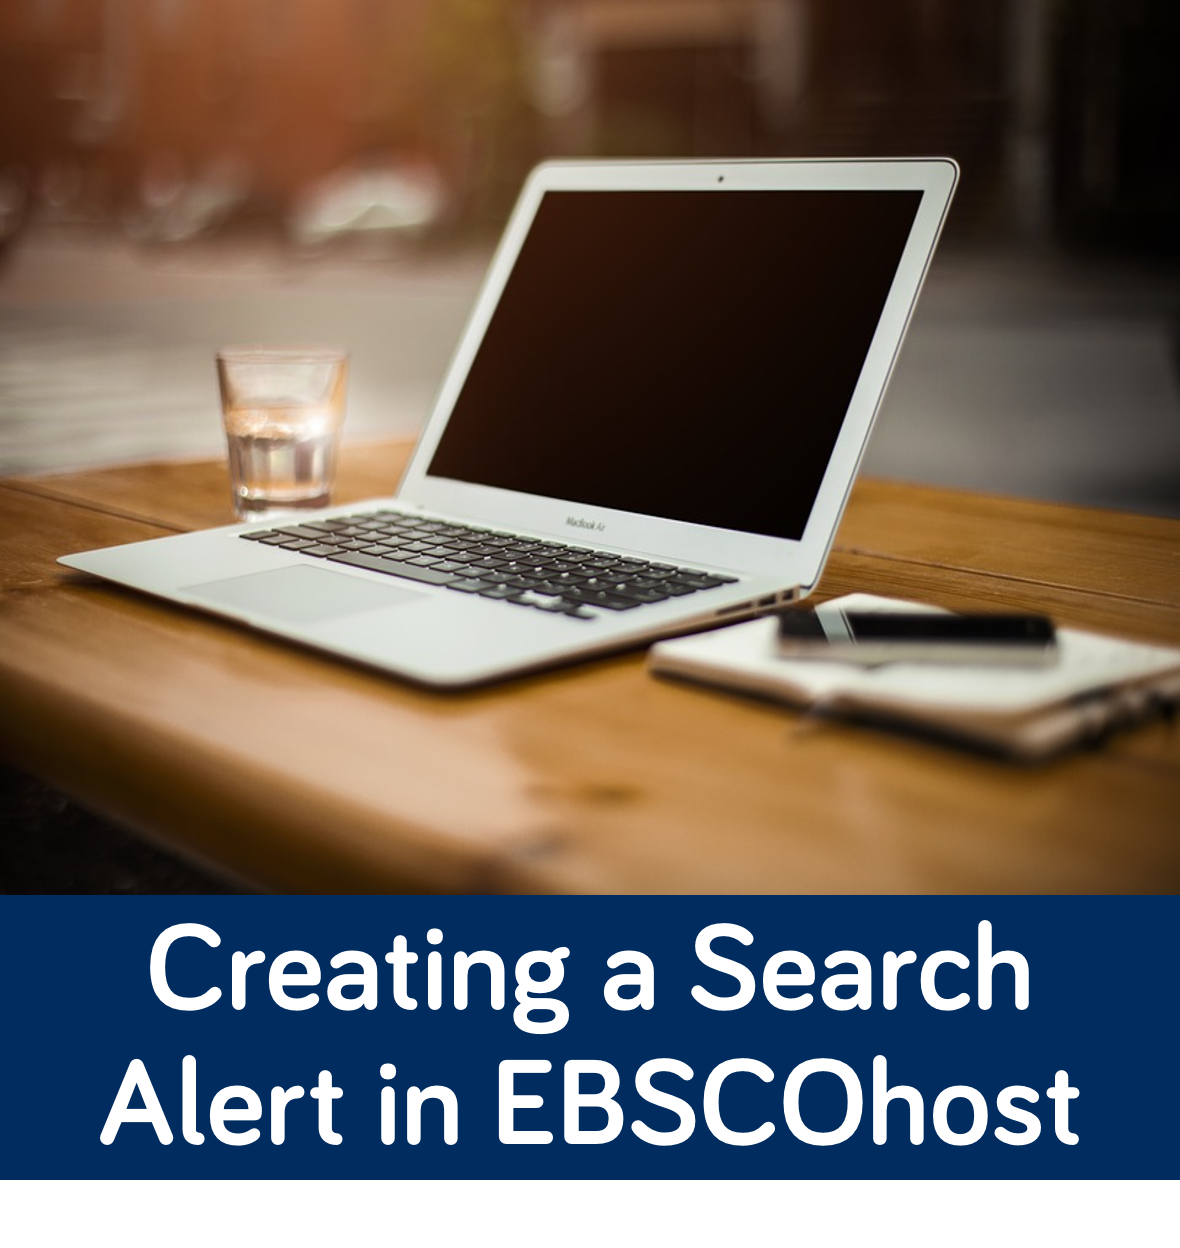 Link to Creating a Search Alert in EBSCO host